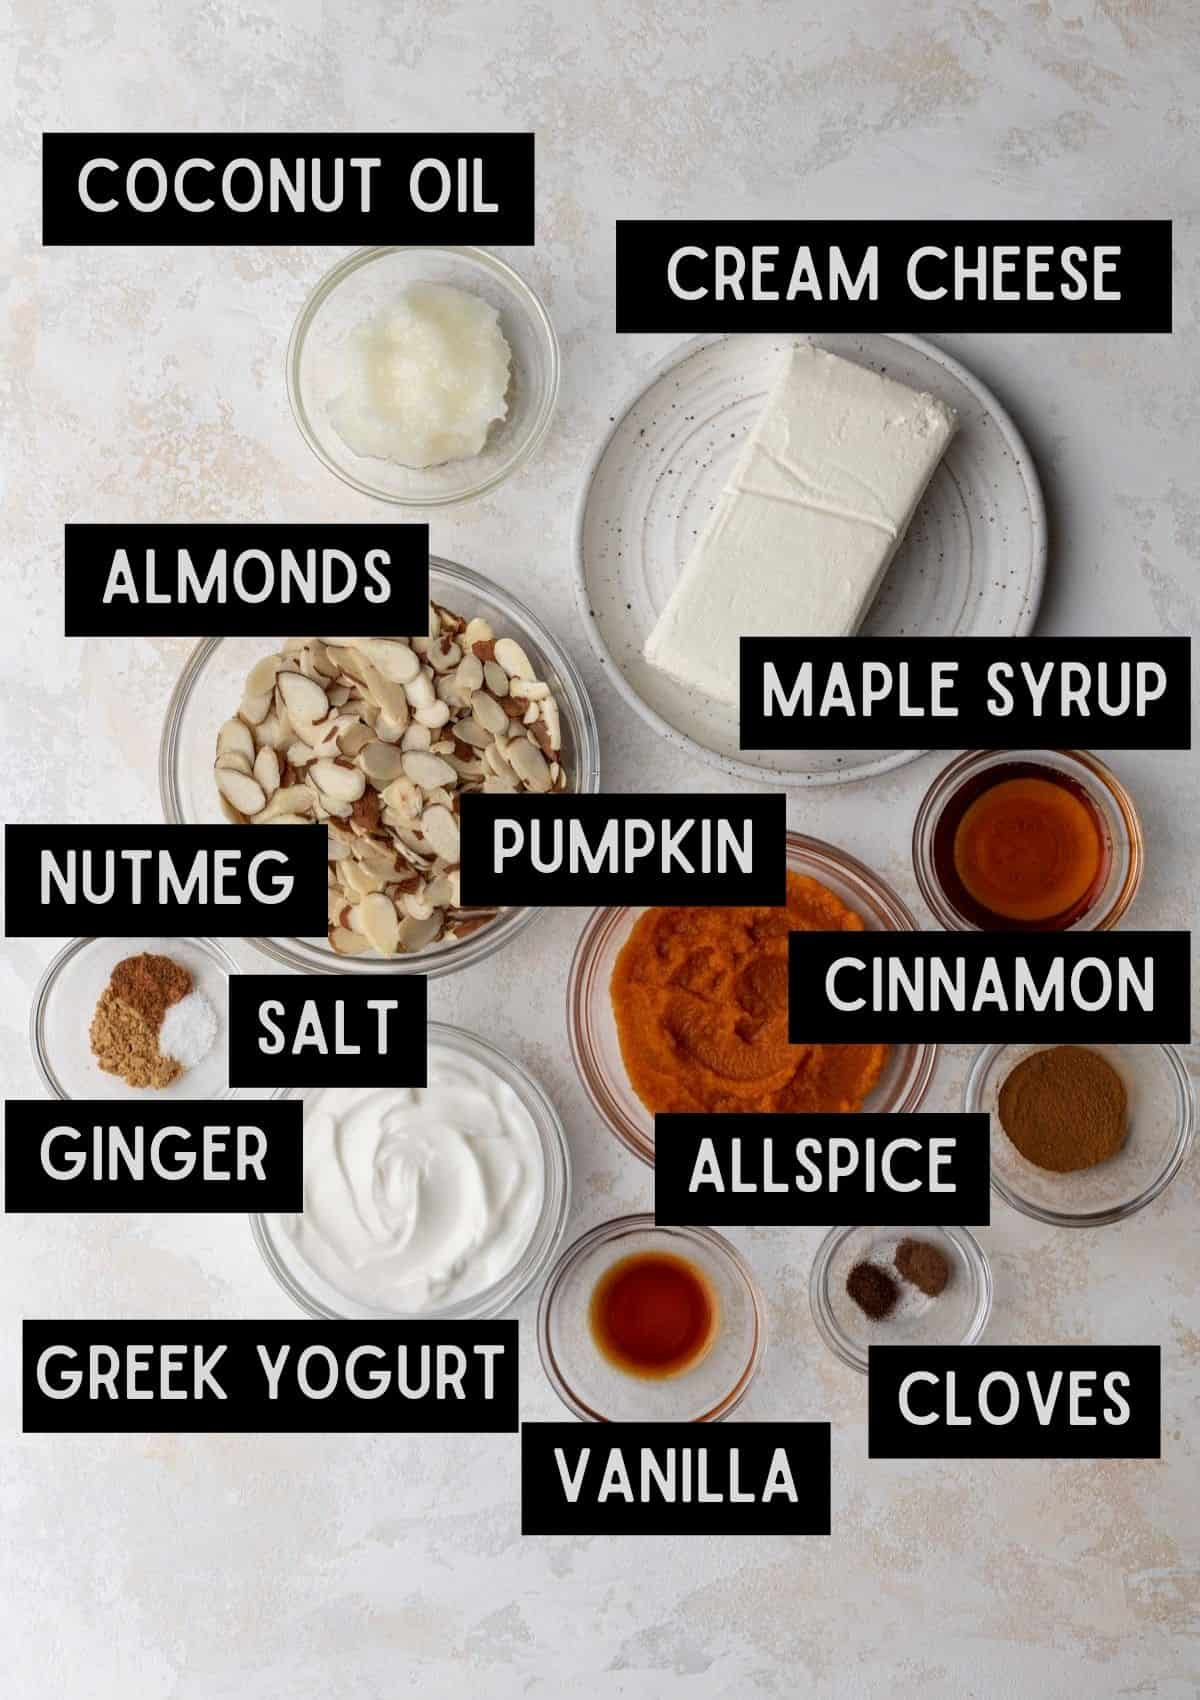 Labelled ingredients for no bake pumpkin swirl cheesecake bars (see recipe for details).